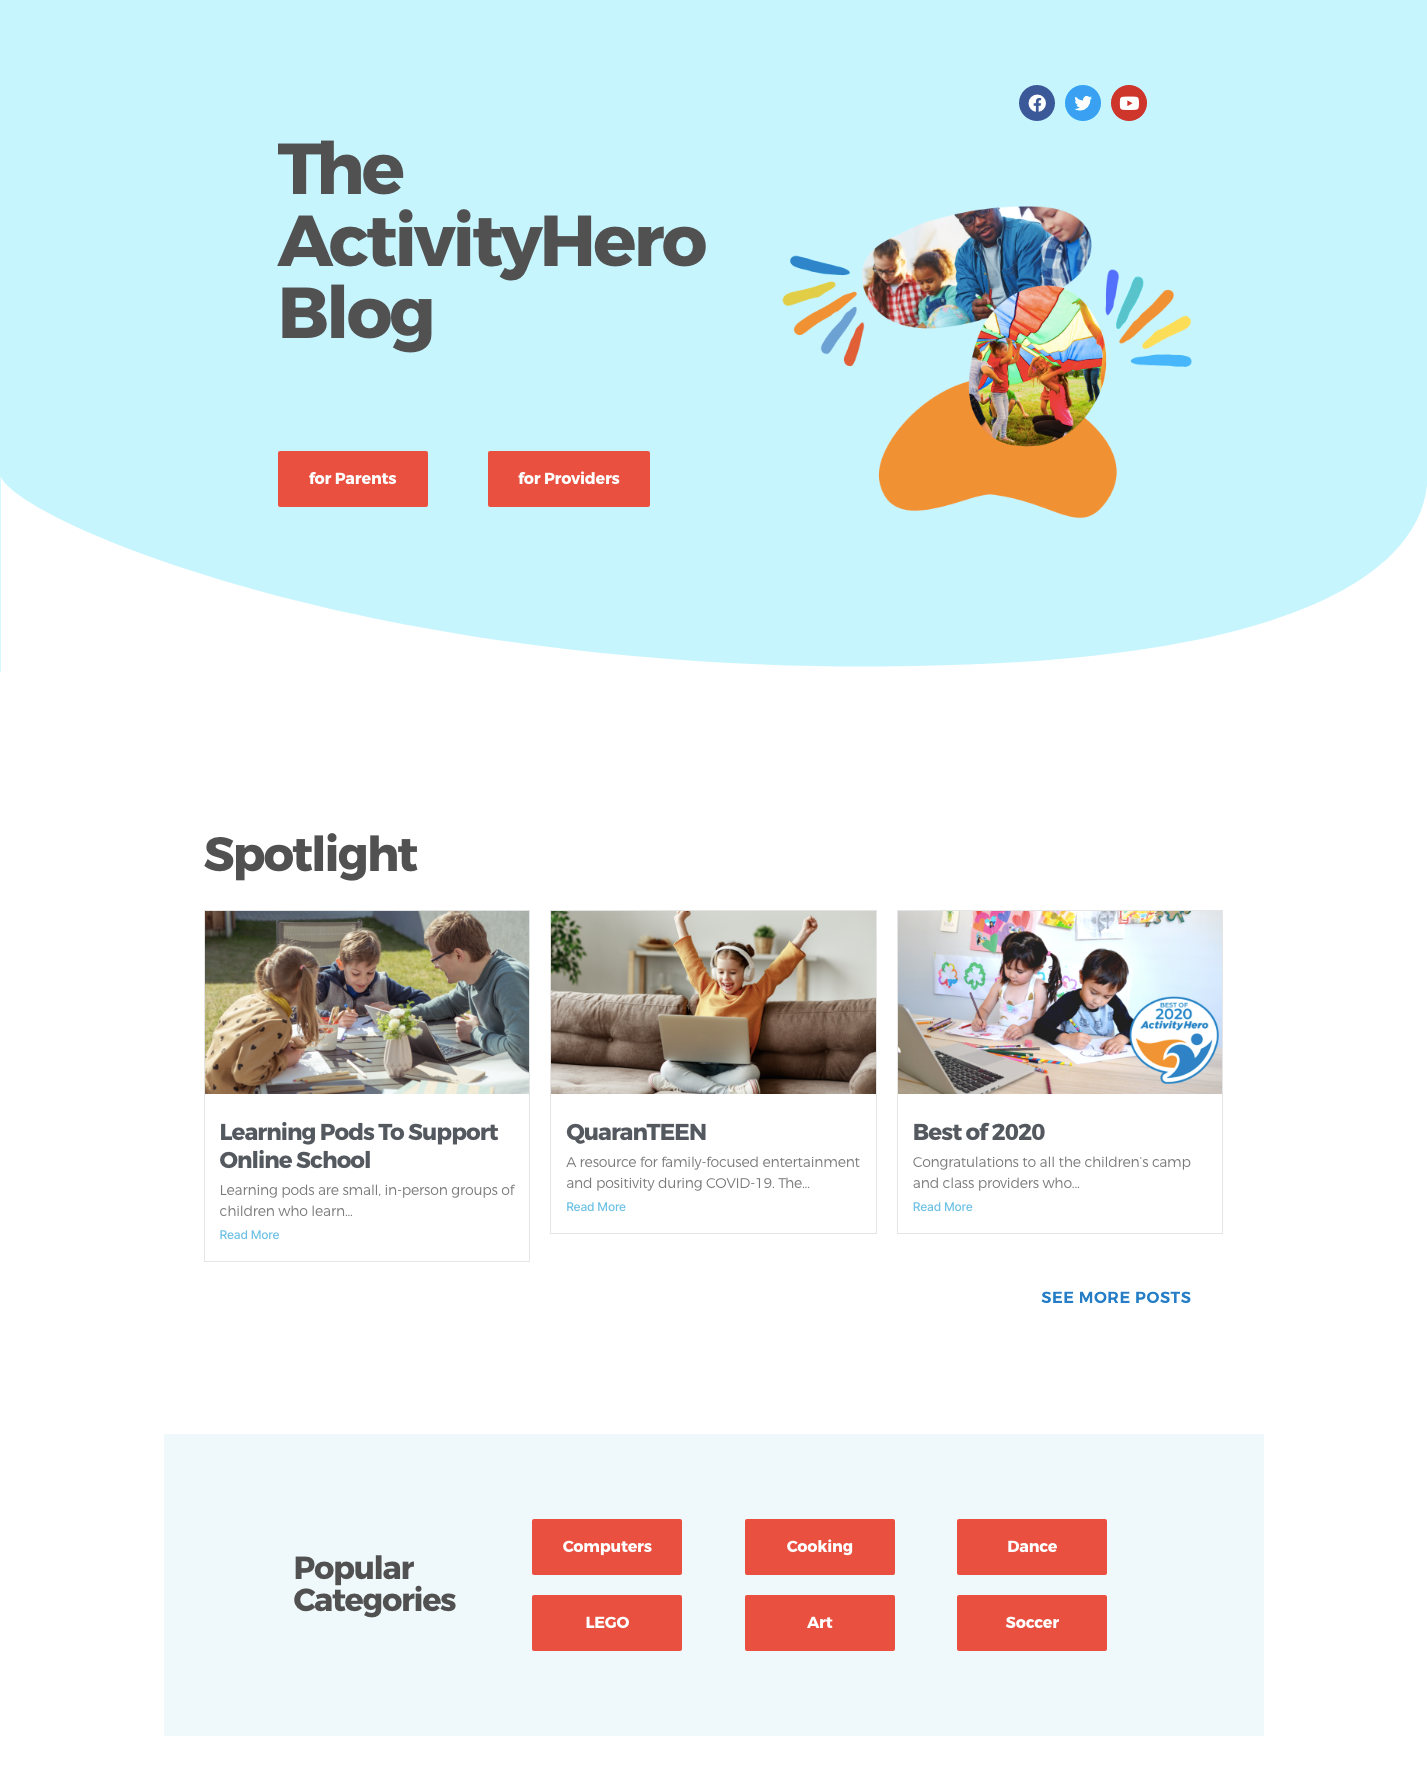 blog.activityhero.com